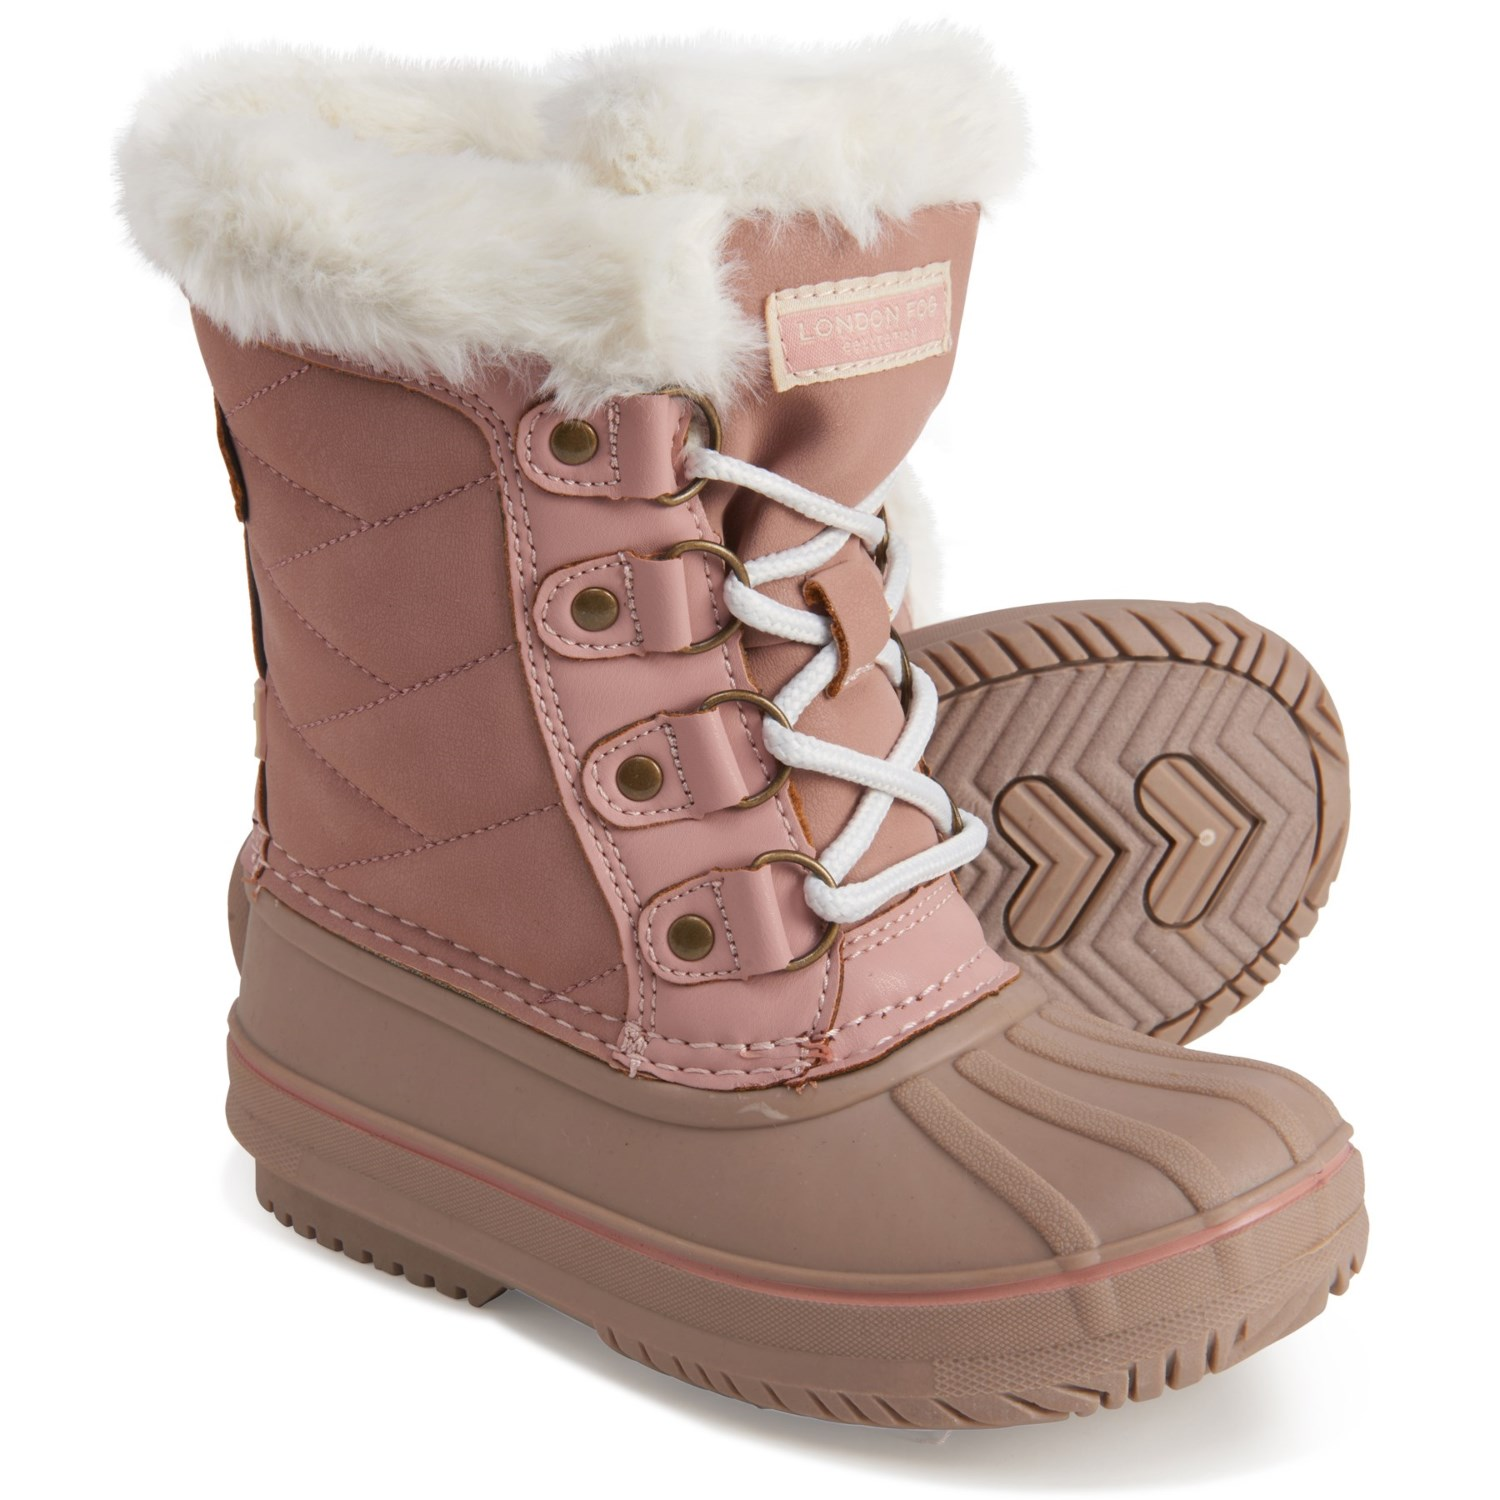 London Fog Snow Boots (For Toddler